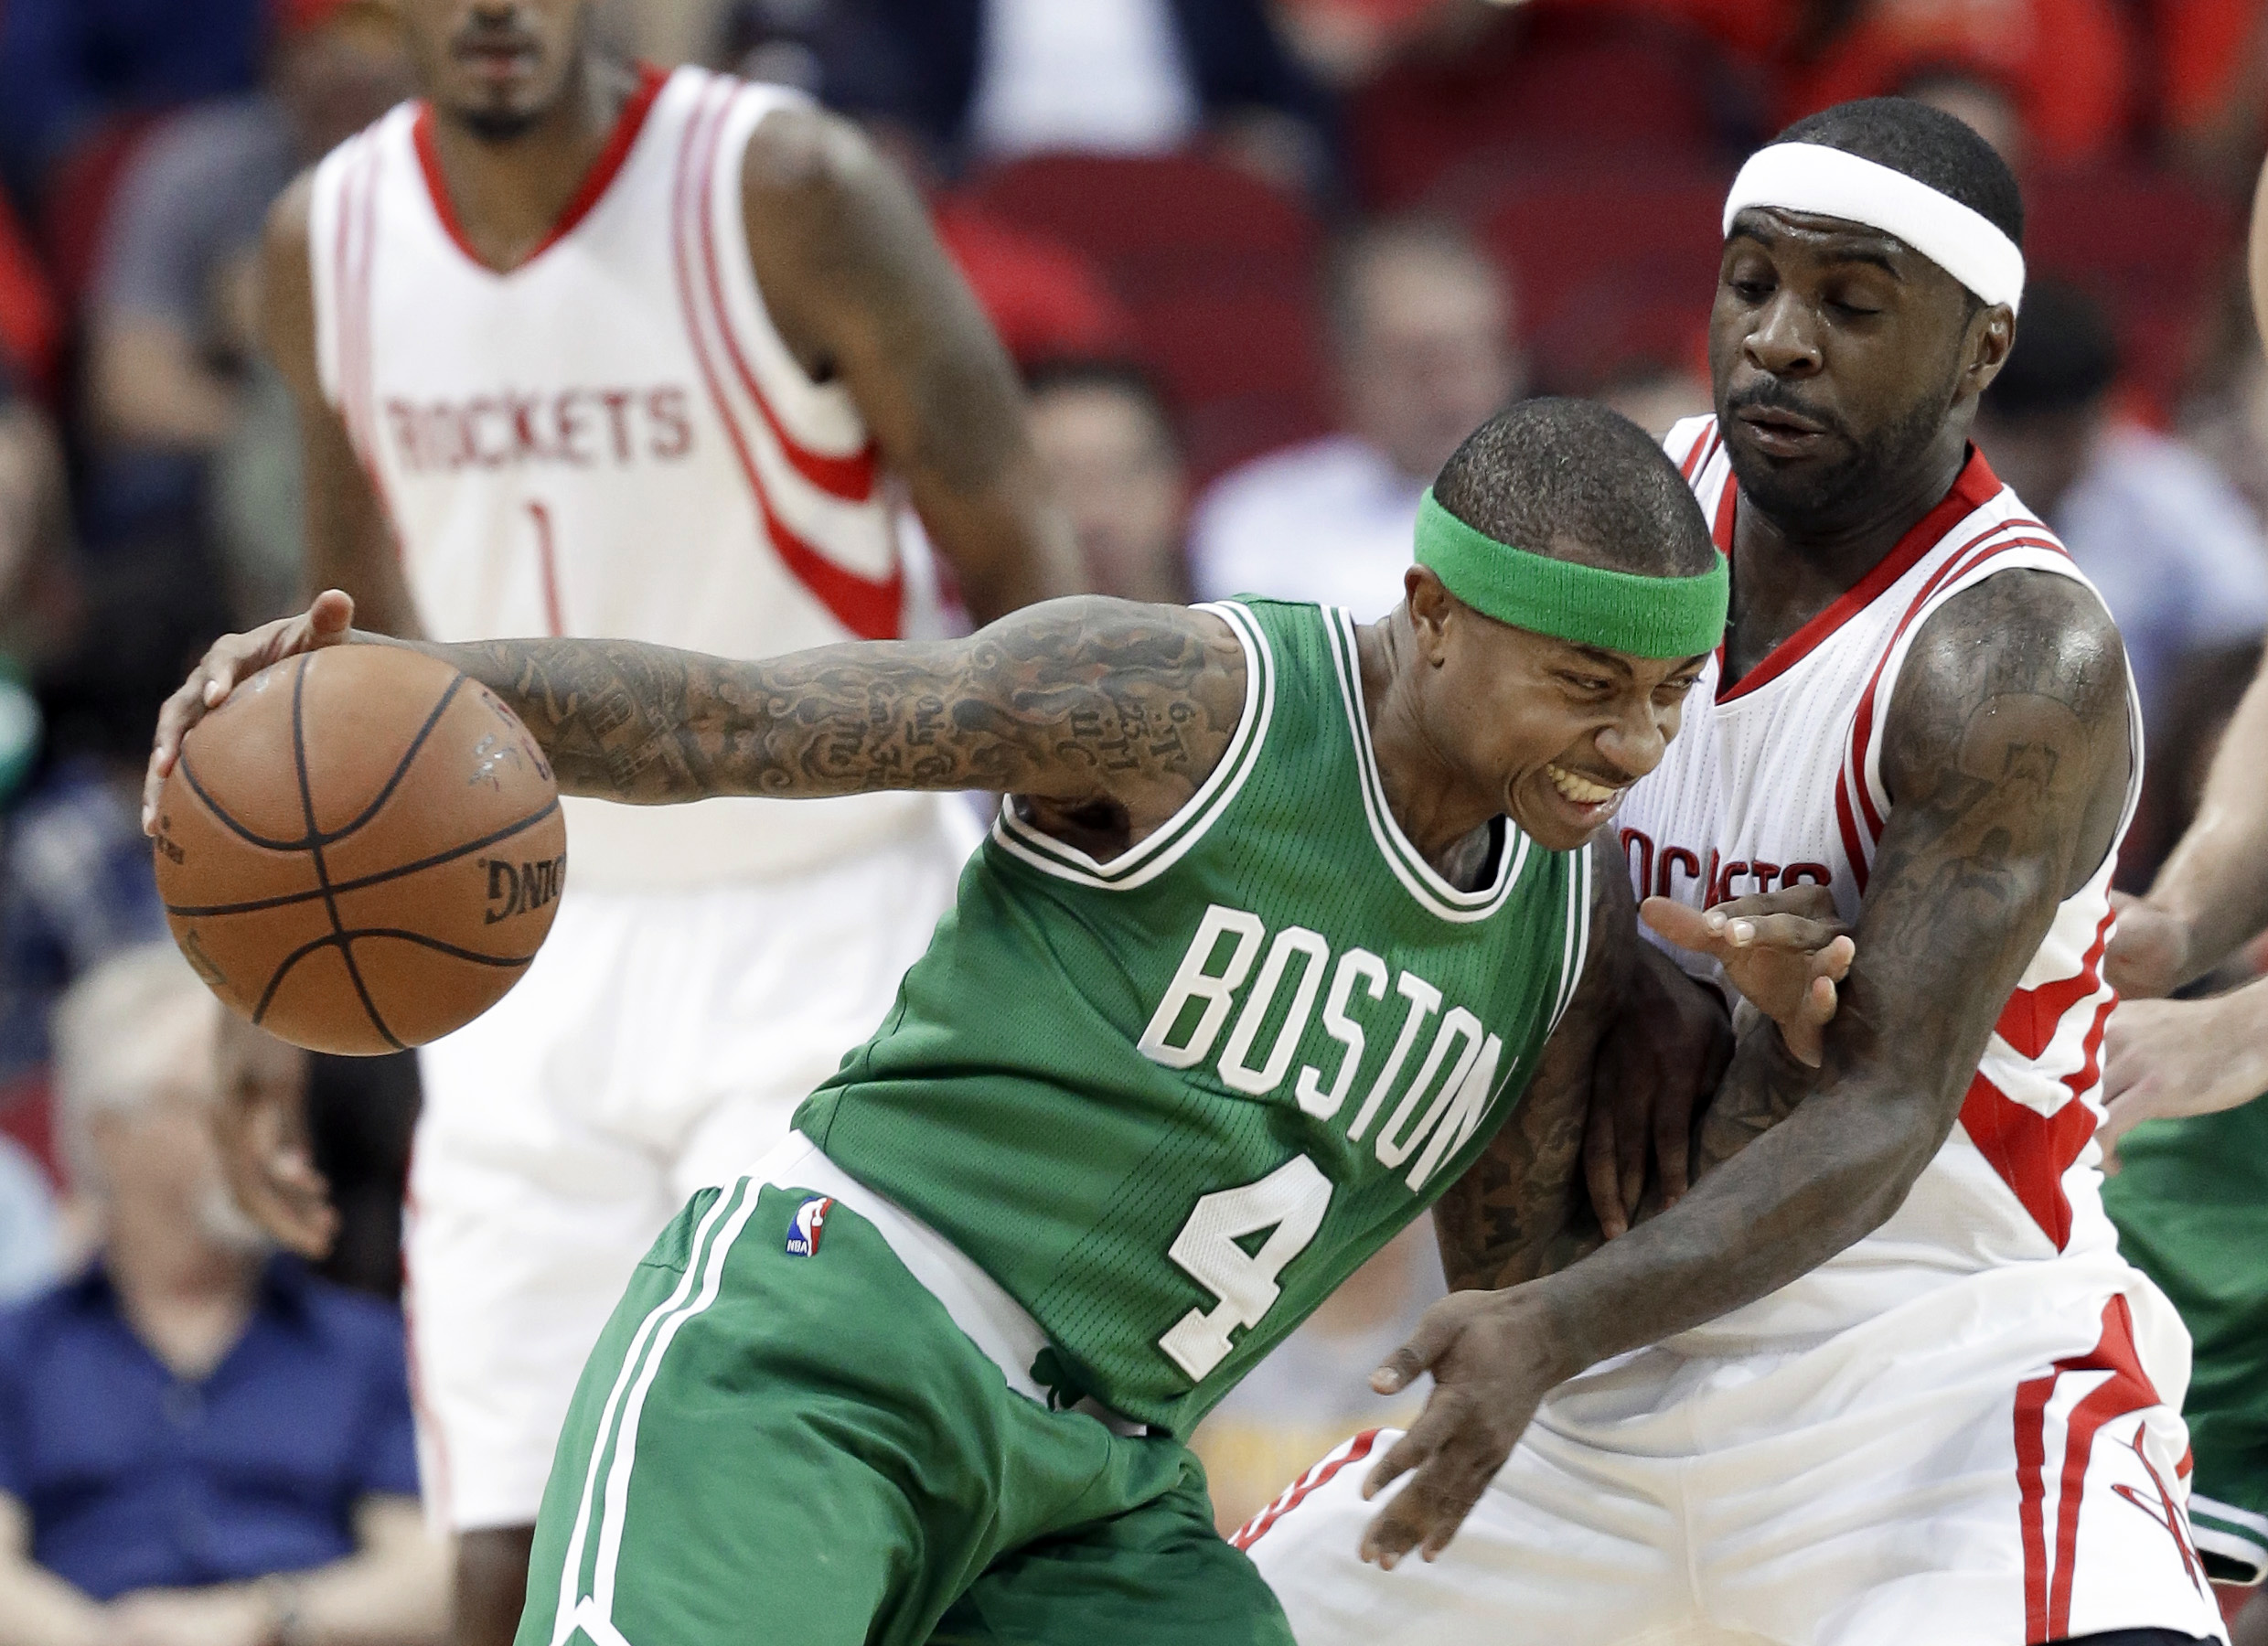 Boston Celtics' Isaiah Thomas (4) pushes against Houston Rockets' Ty Lawson during the first half of an NBA basketball game, Monday, Nov. 16, 2015, in Houston. (AP Photo/Pat Sullivan)